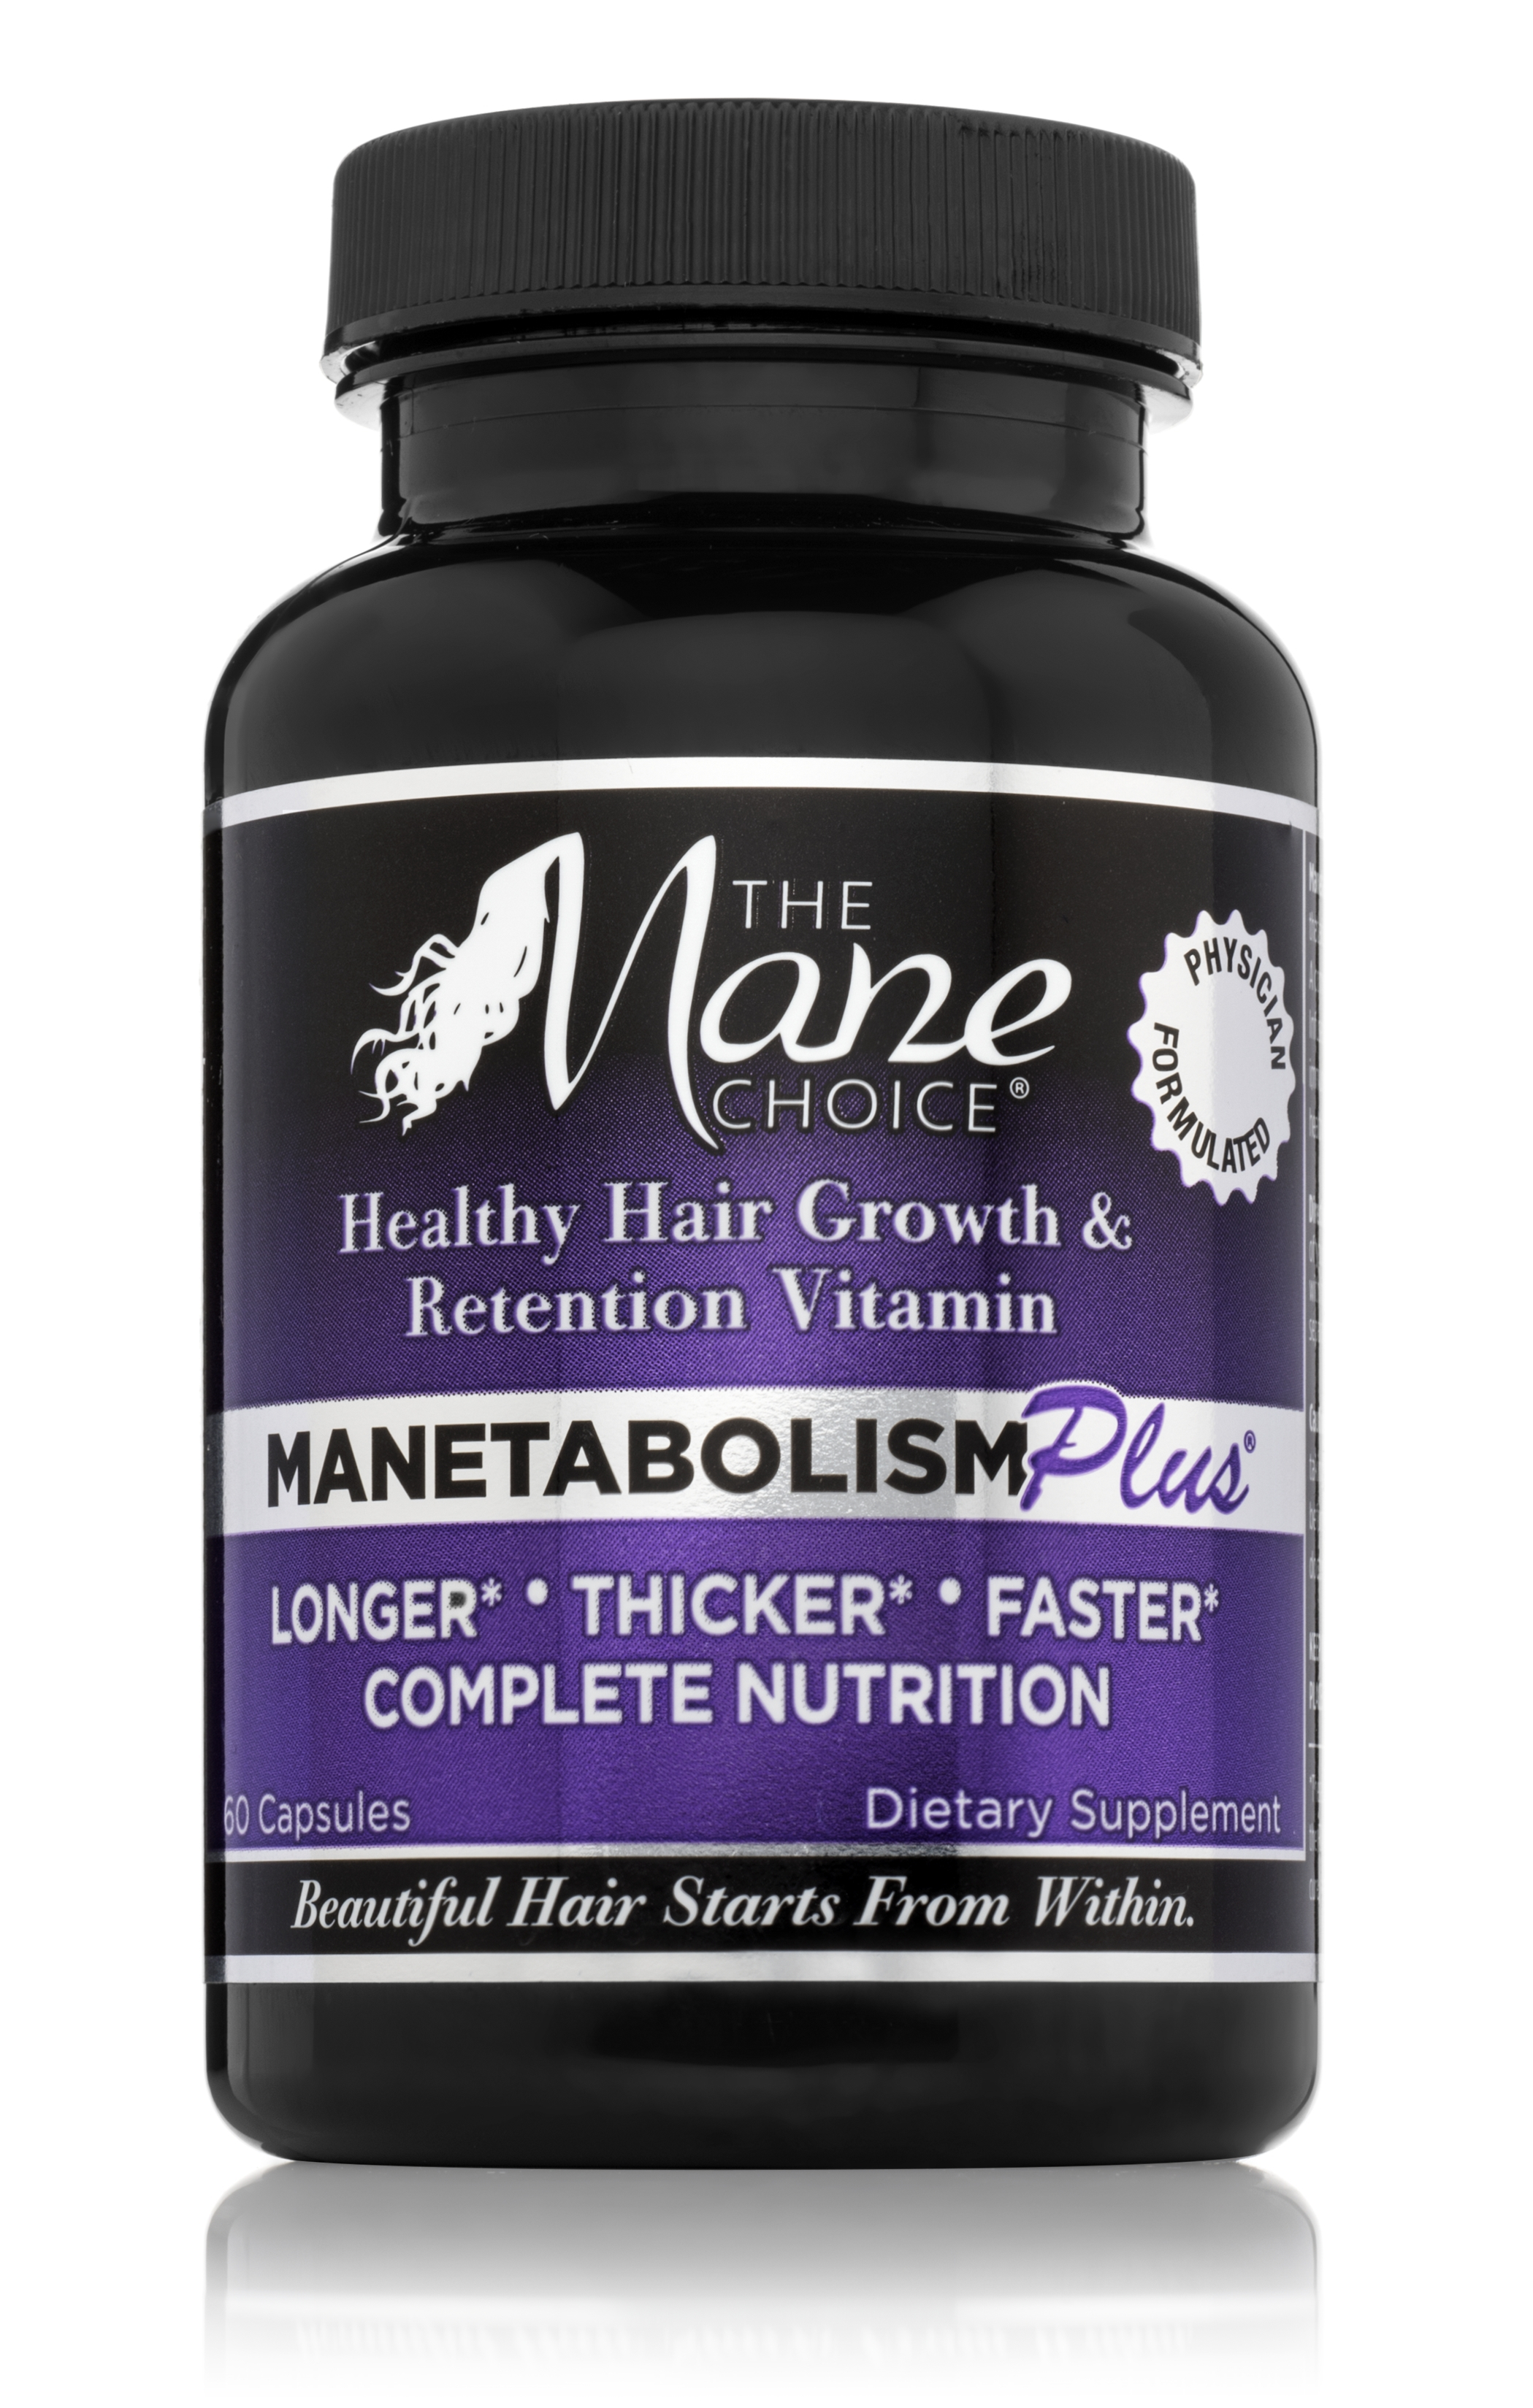 #1 rated multi-vitamin promoting longer, healthier hair by Mane Choice Hair Solution